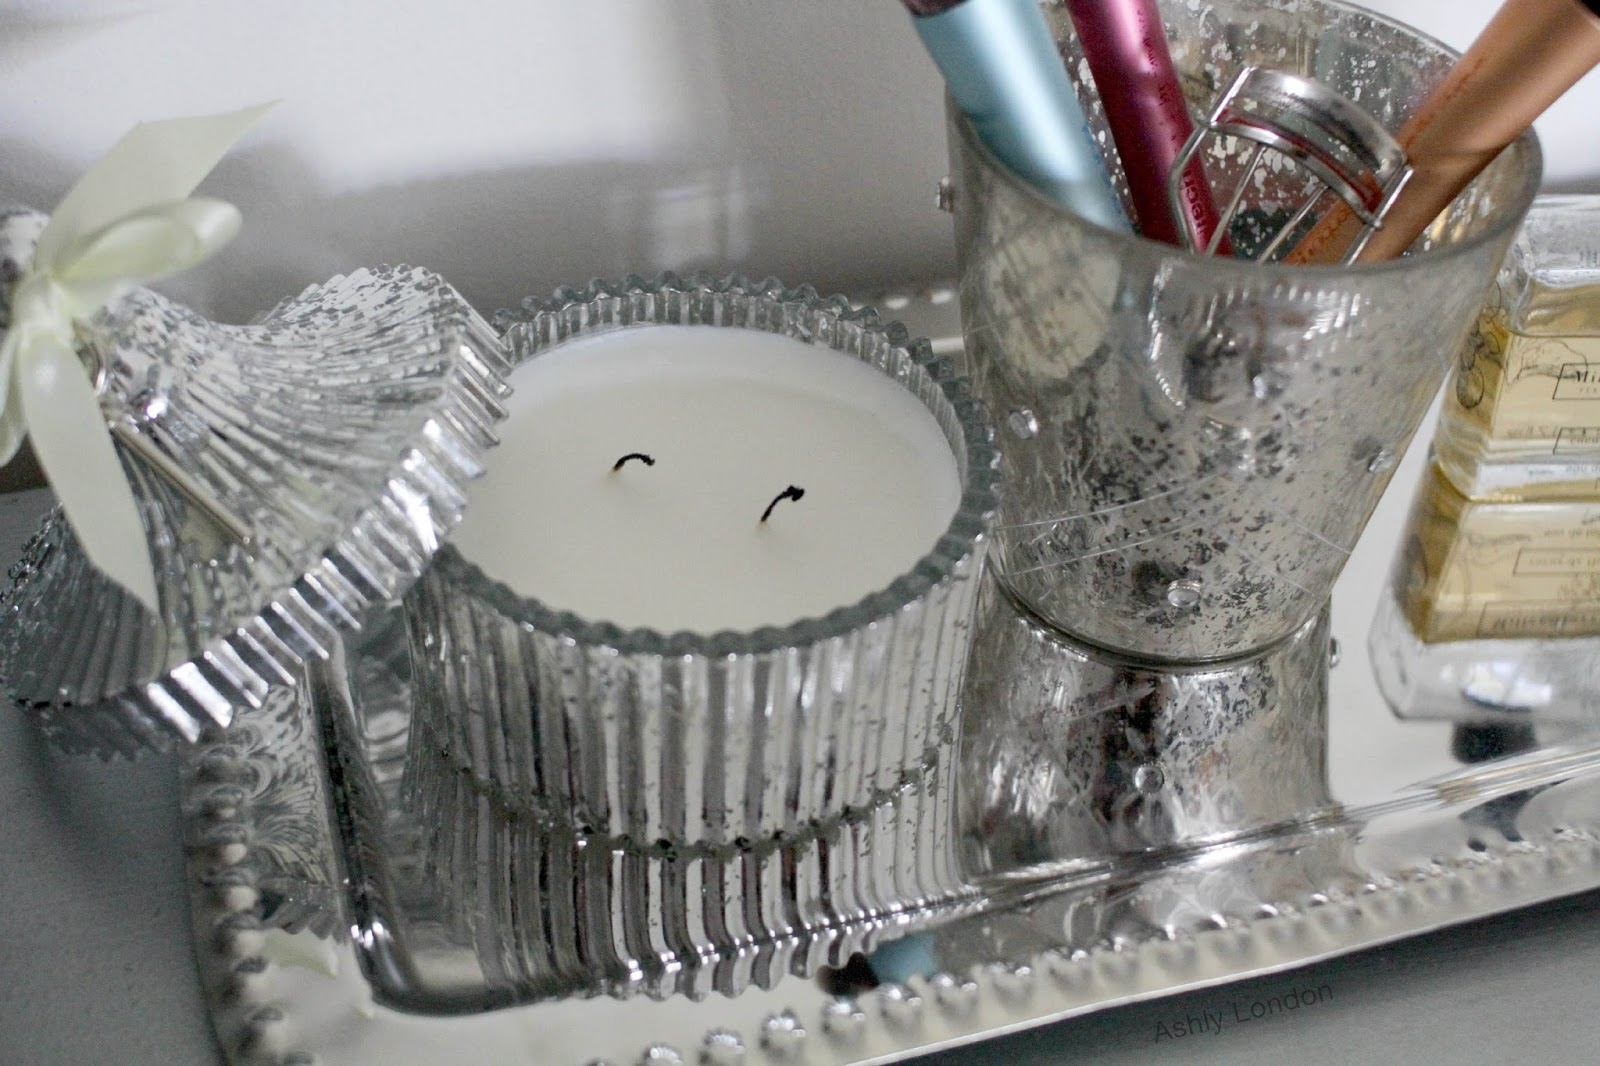 I Love Anything Shiny Silver And Antique Chic I Find Tk Maxx Really Great For Home Decor At Amazing Prices I Buy A Lot Of Bits There